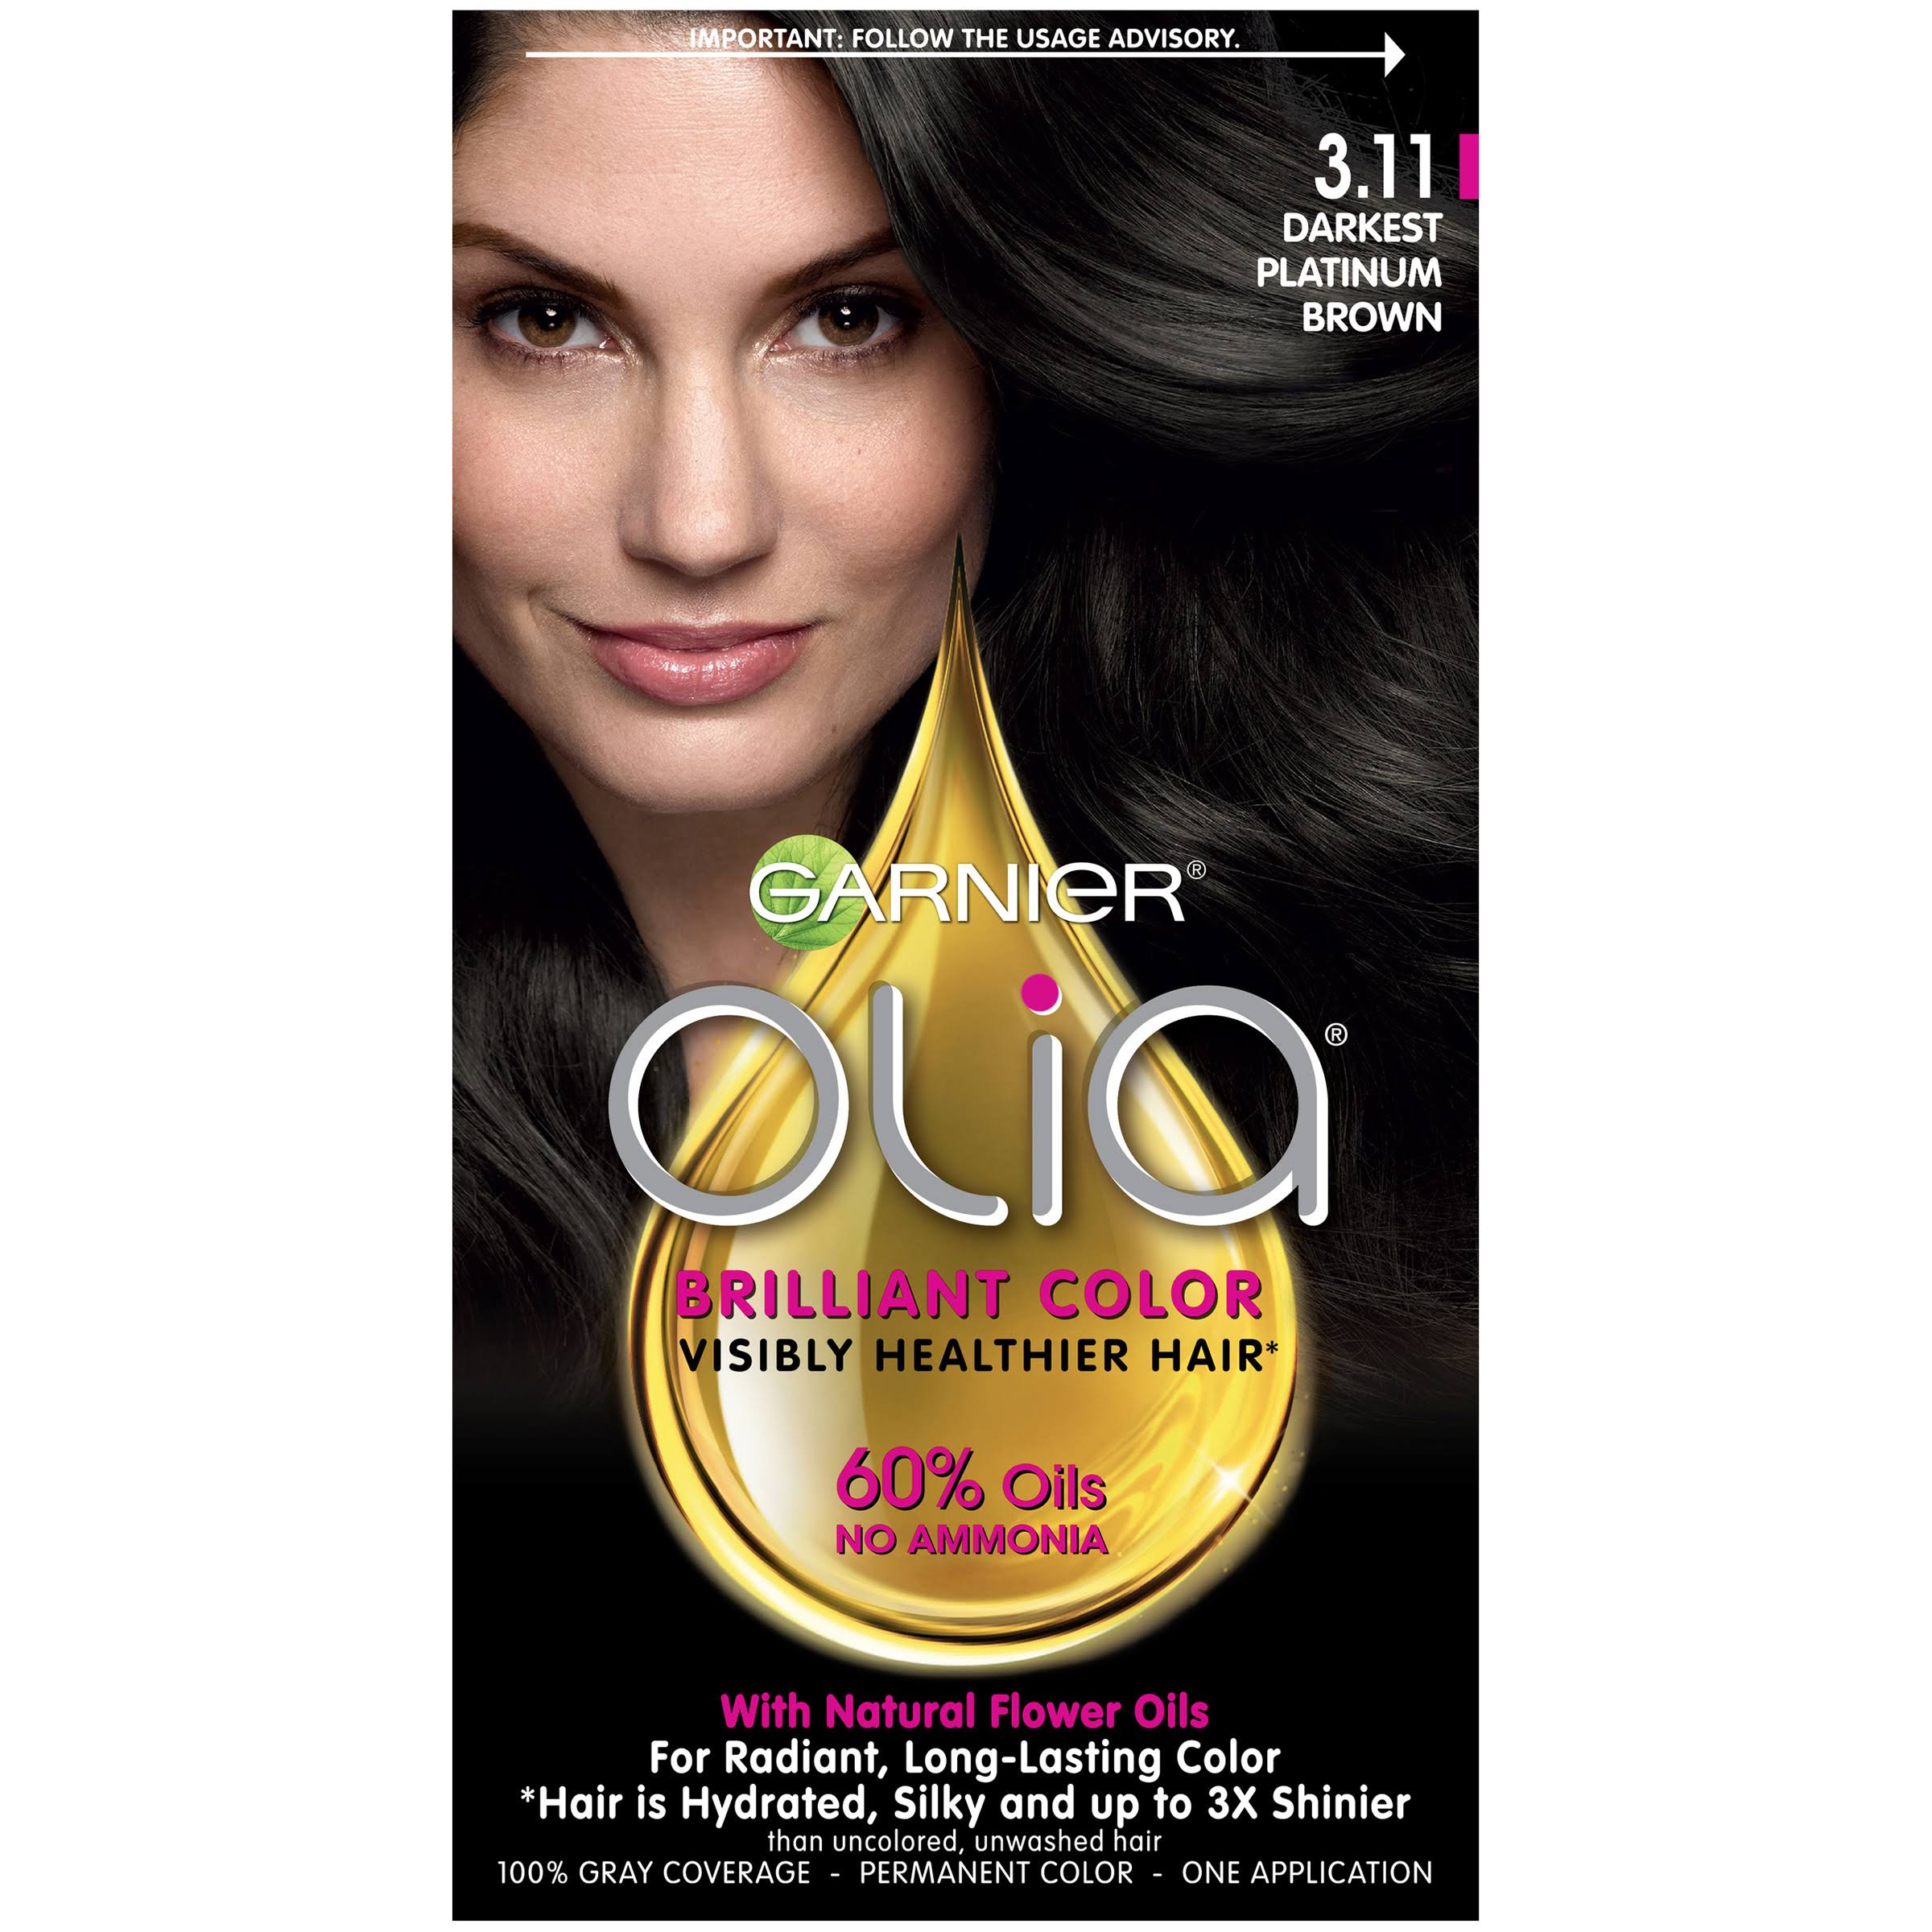 Garnier Olia Oil Powered Permanent Hair Color - 3.11 Darkest Platinum Brown